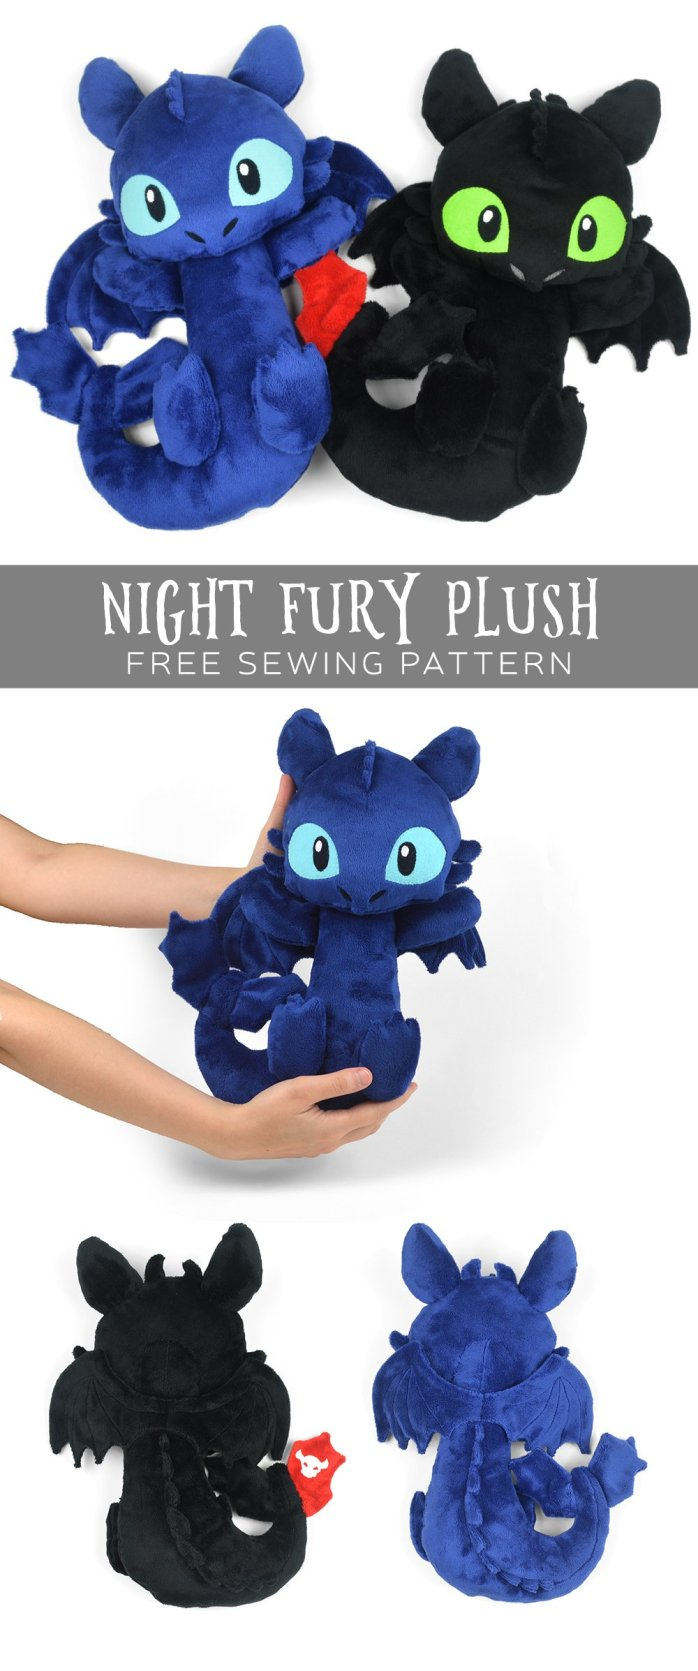 nightfuryplush1817933455752185387.jpg